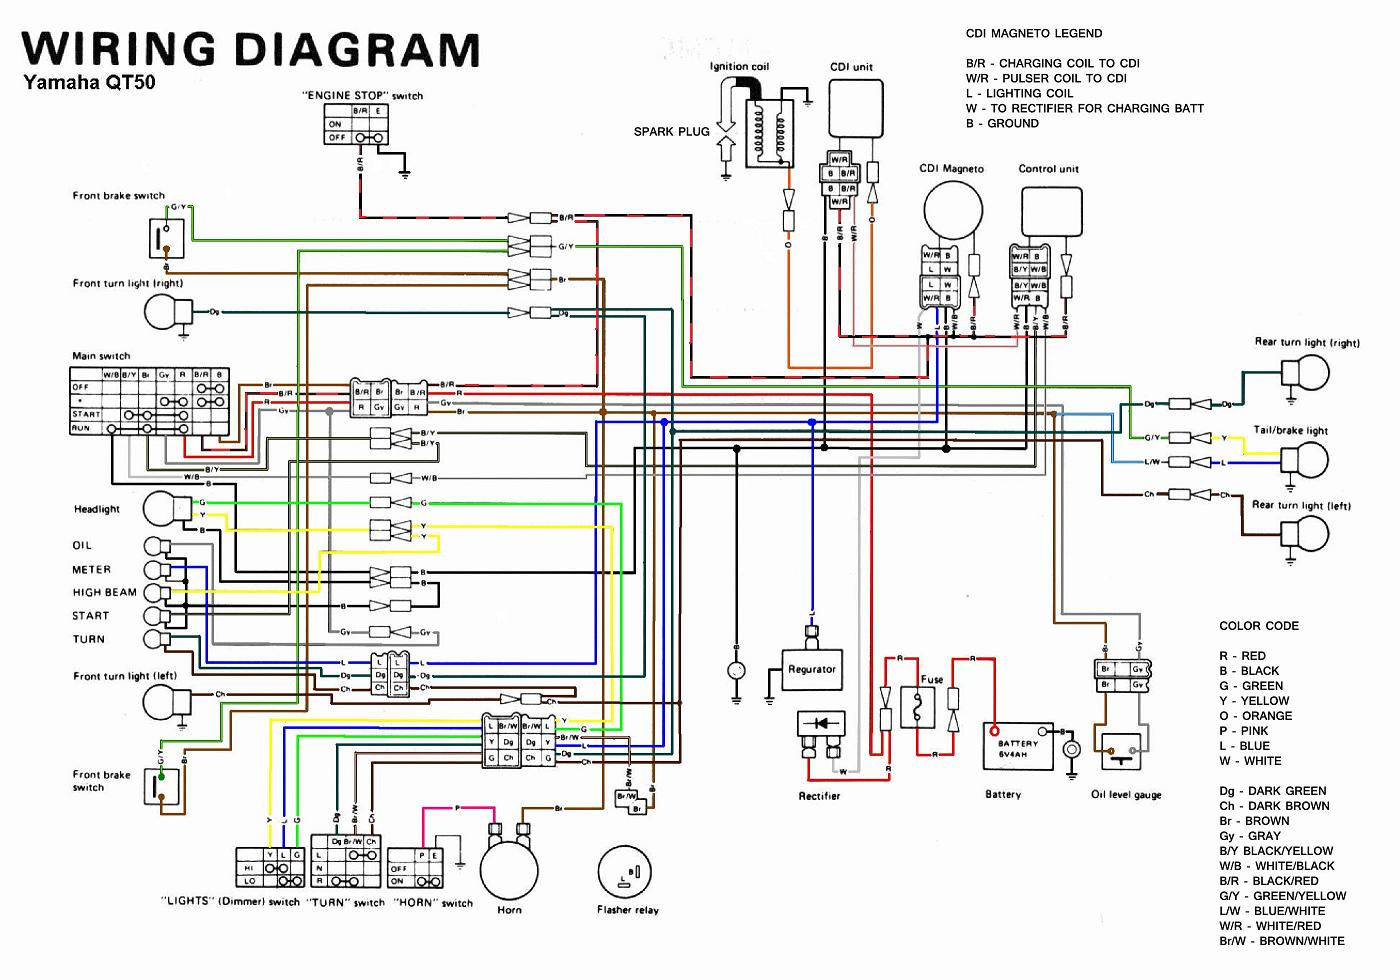 Yamaha Qt 50 Wiring Diagram Reinvent Your 79 Fiat 124 Schematic Qt50 Luvin And Other Nopeds Rh Net Mopeds With